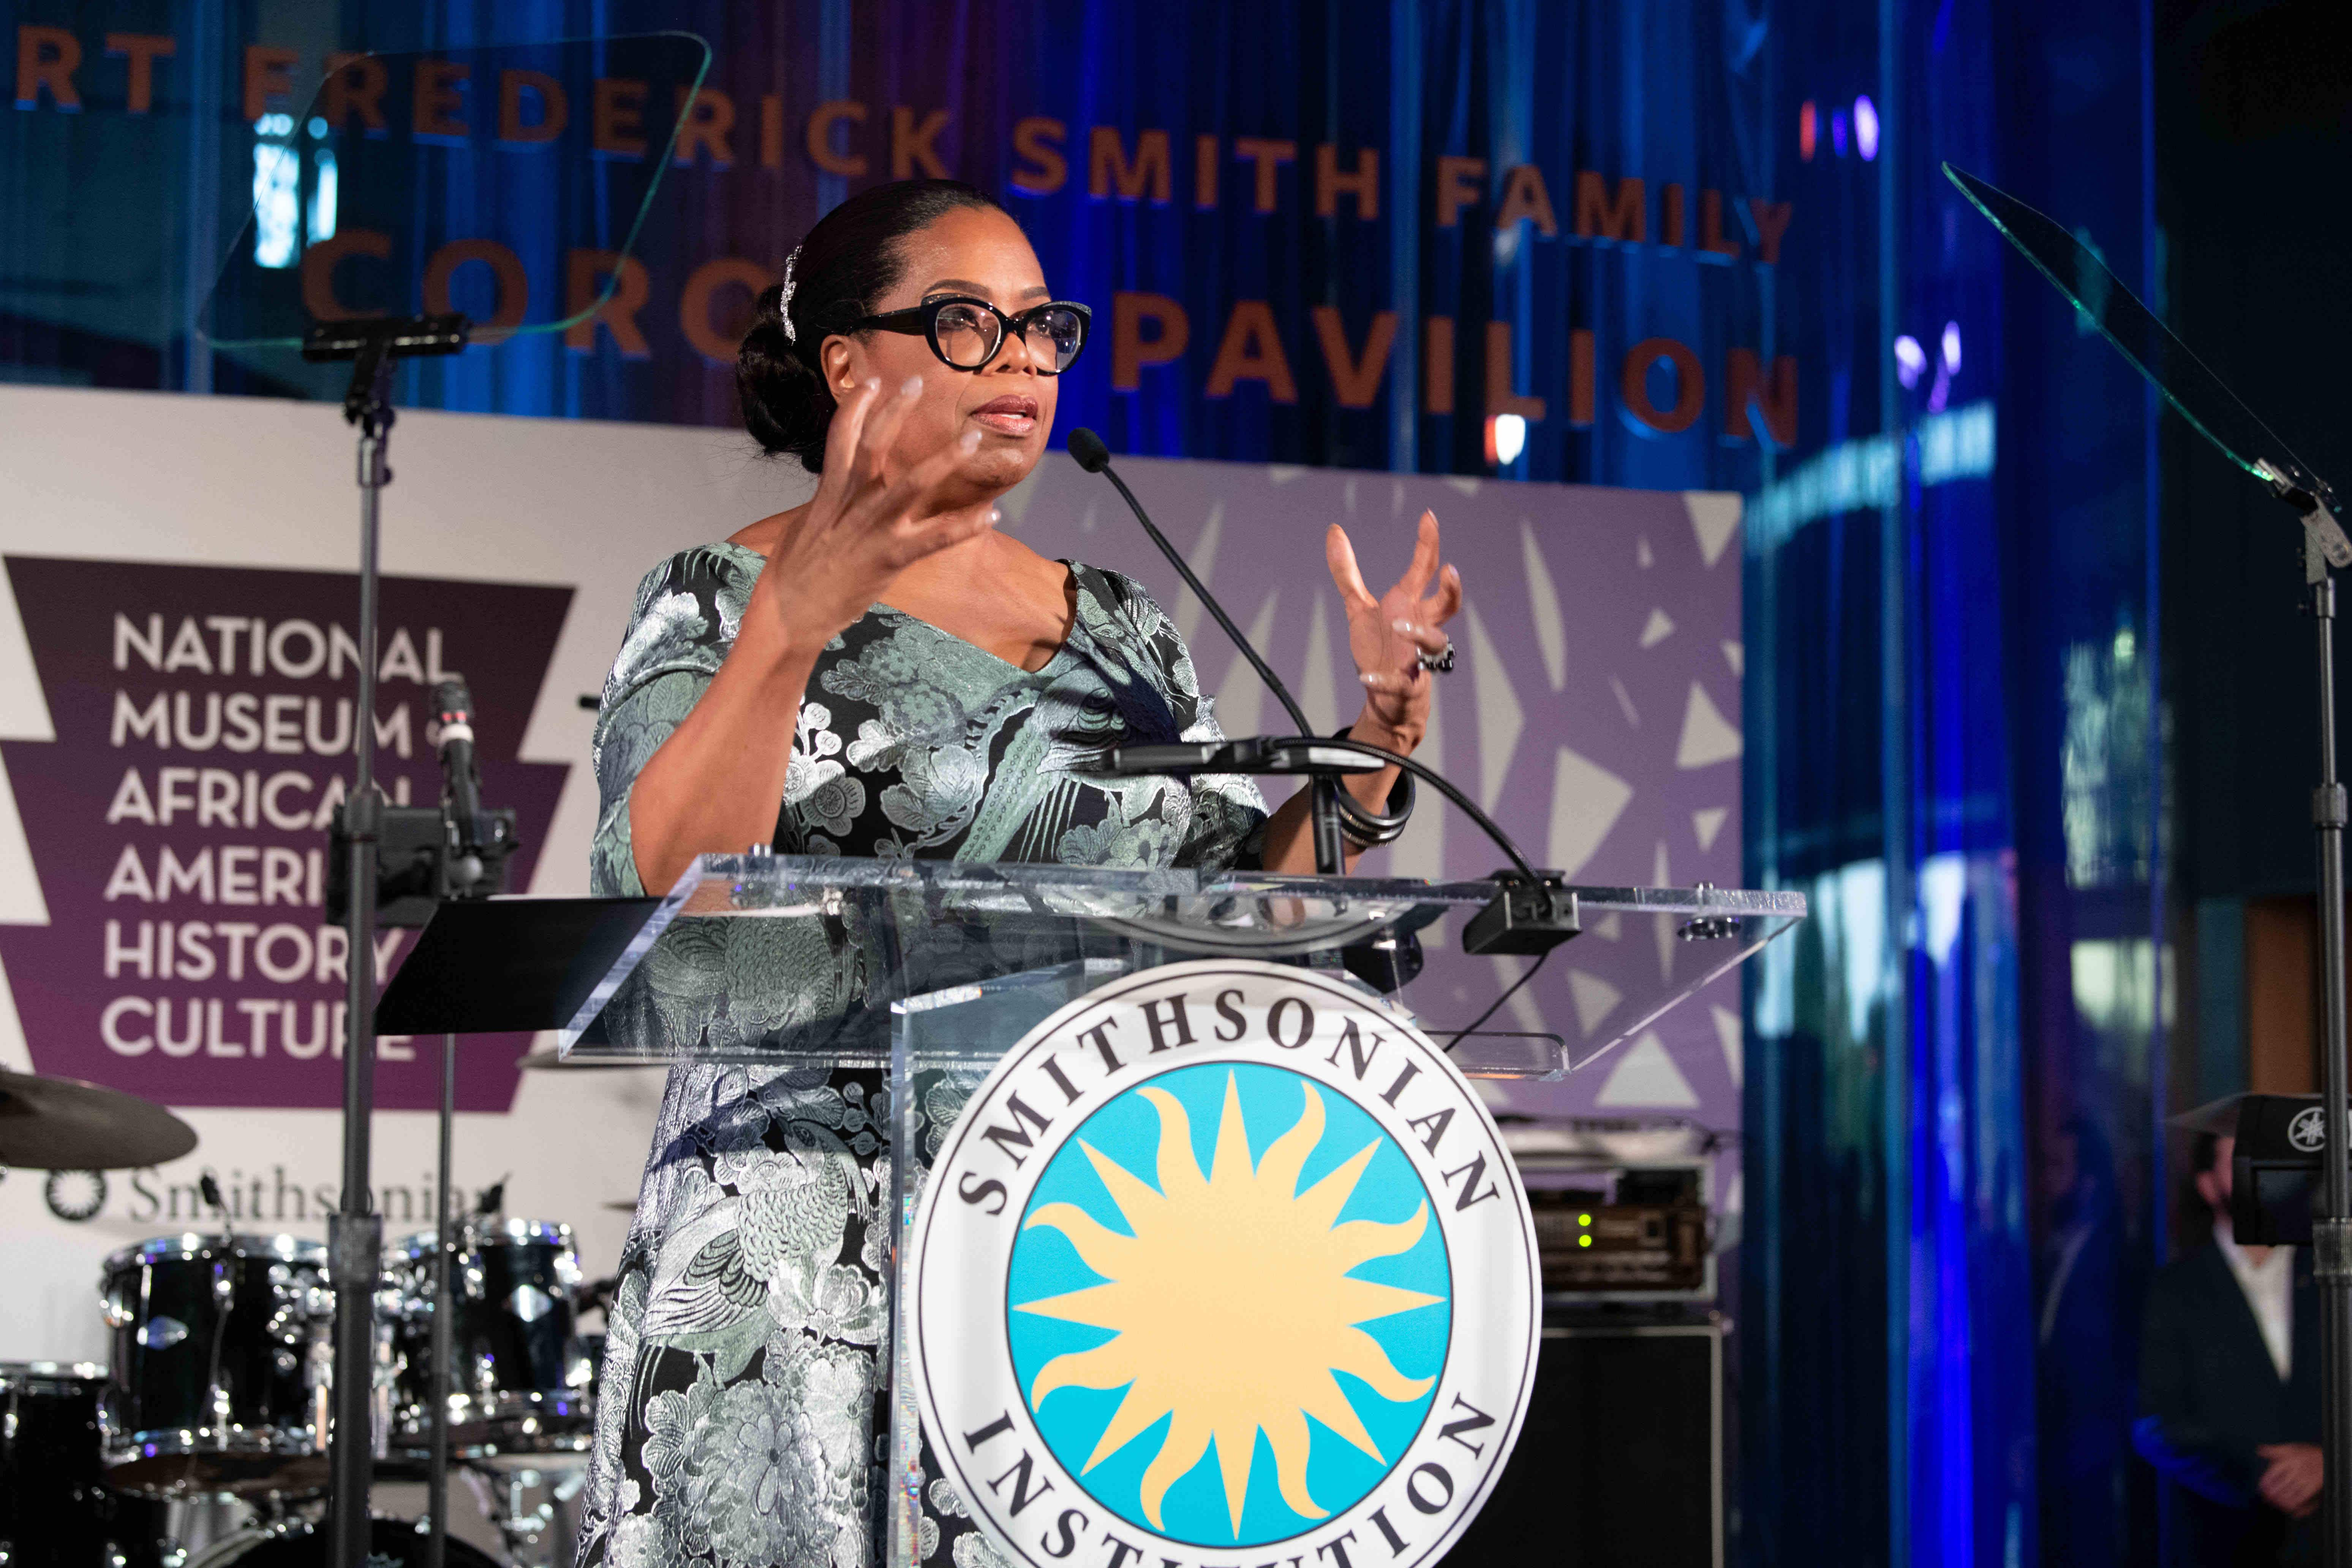 A new Oprah exhibition in Washington explores her life and legacy